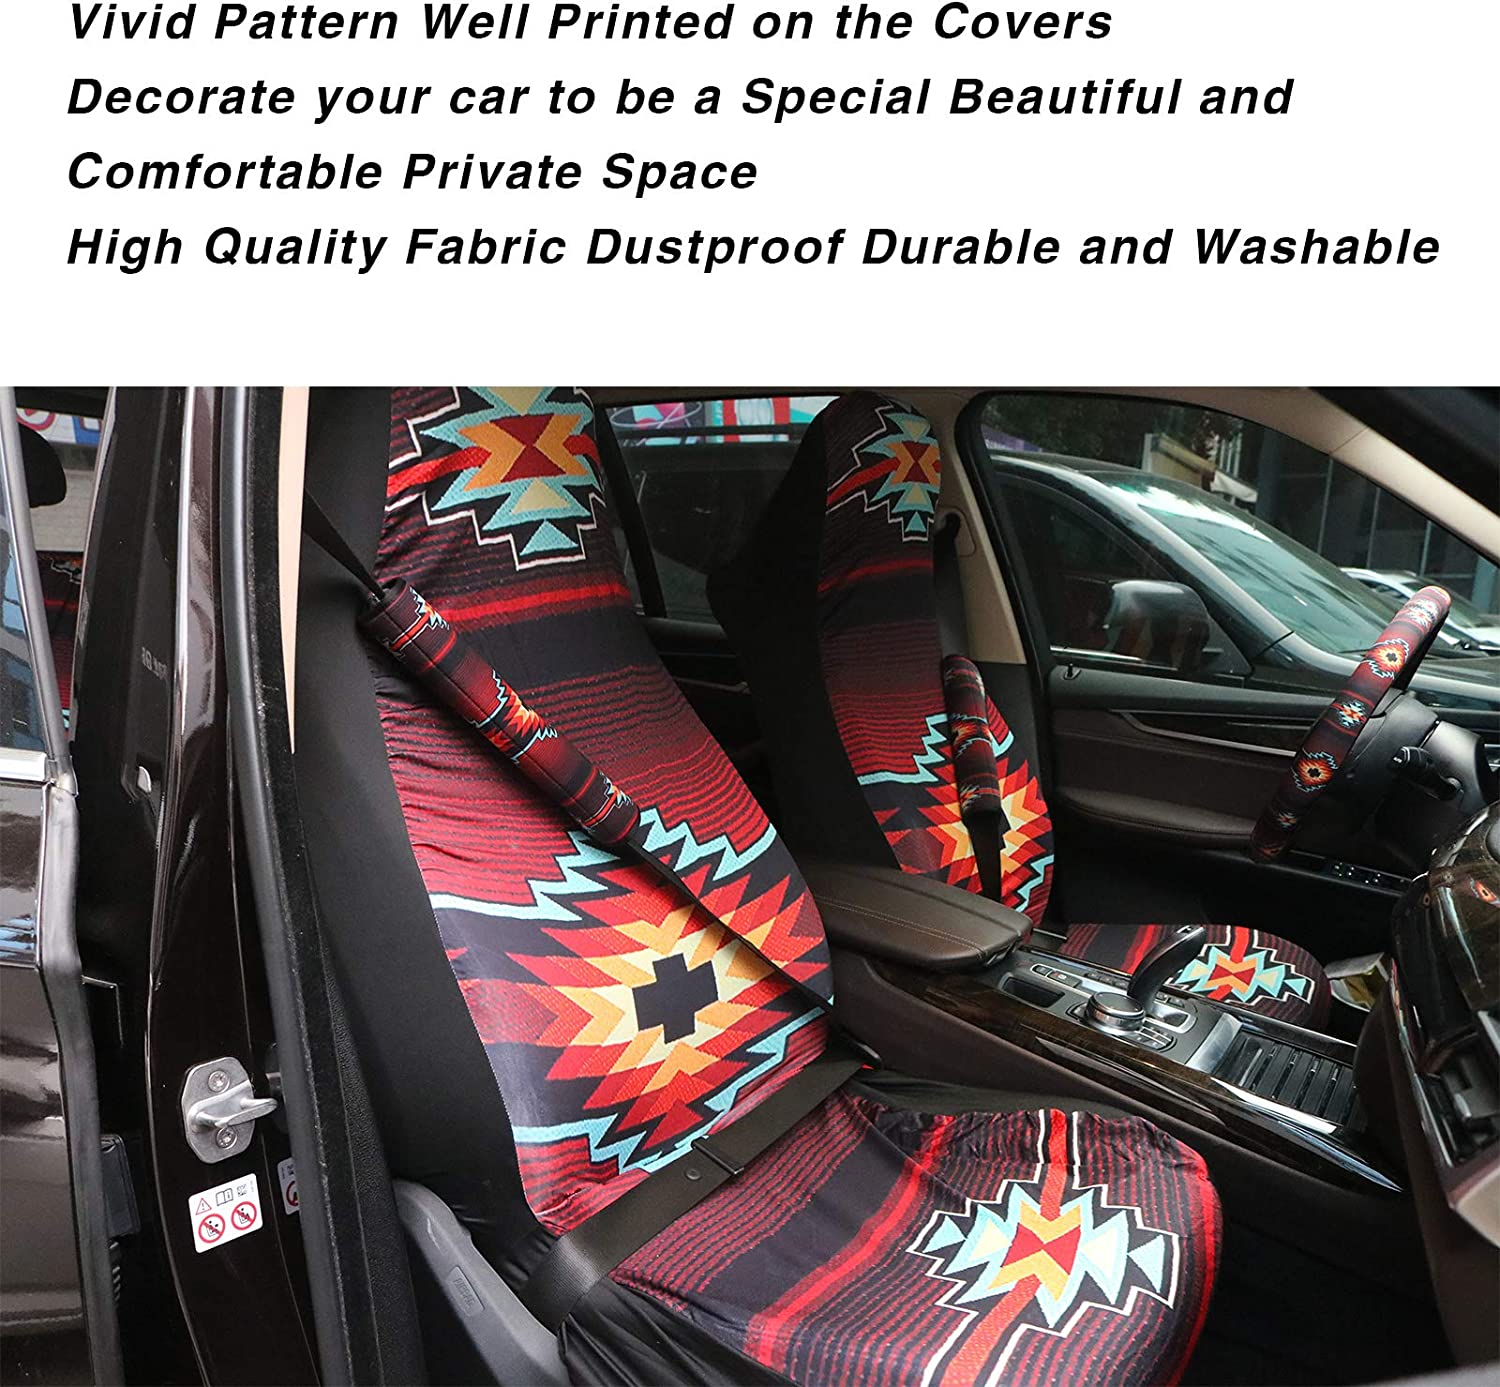 Cozeyat Hibiscus Florals Blue Blanket Car Seat Covers Hawaiian Style Slip-Resistant Easy to Install Full Set of 4 Dustproof Cars Interior Accessories